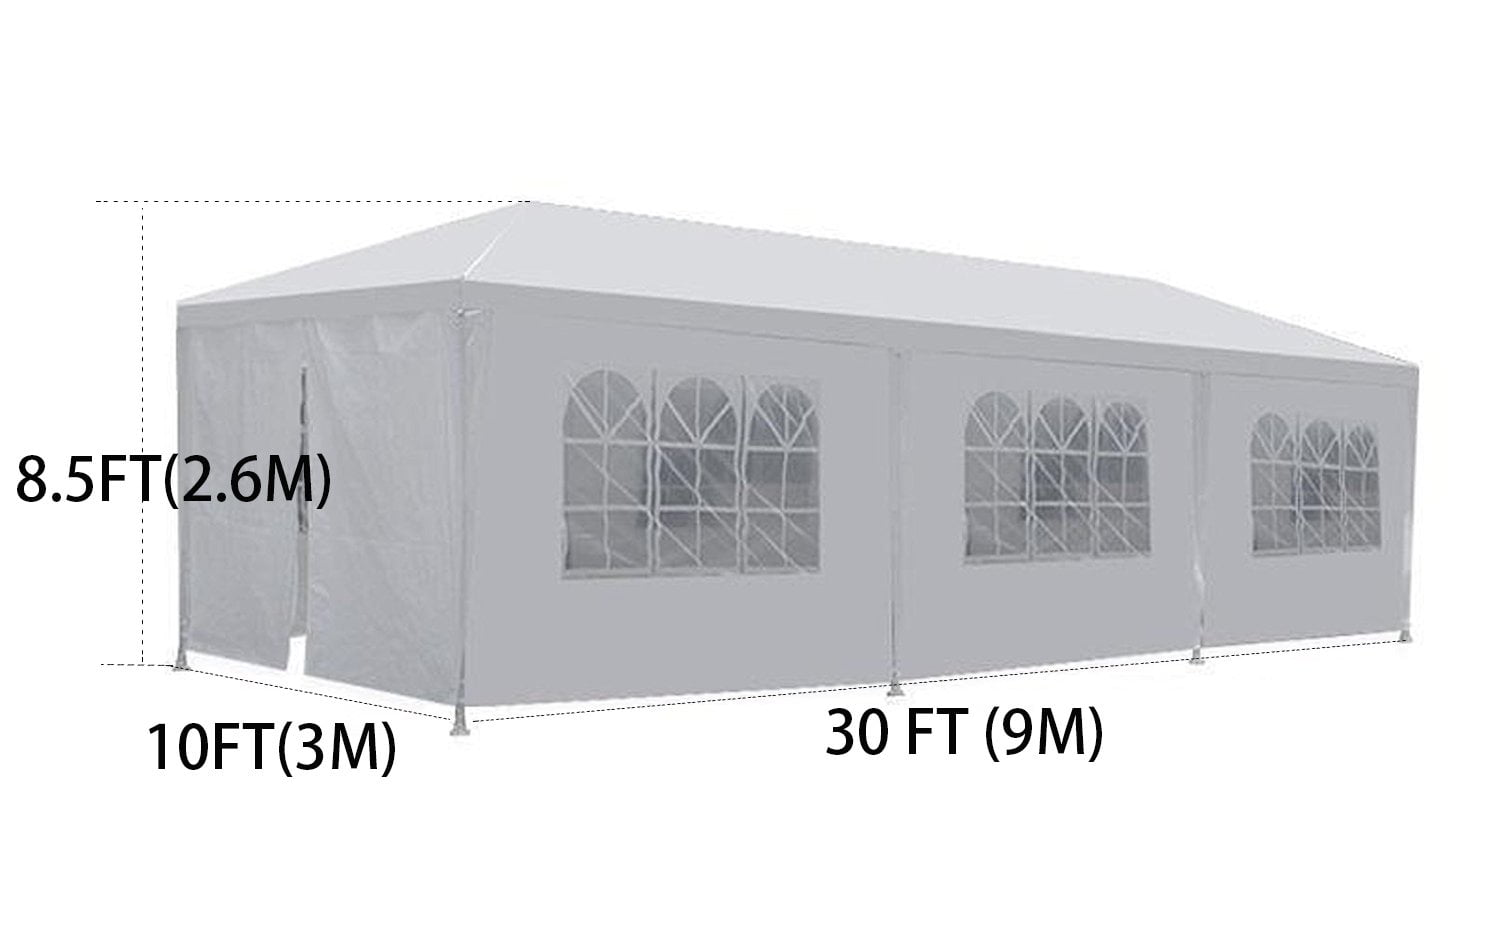 Outdoors Events Gazebo with Removable Sidewalls with Windows Great for Event and Party Pavilion Cater Fits 30 People Clevr 10x20 Wedding Party Canopy Tent